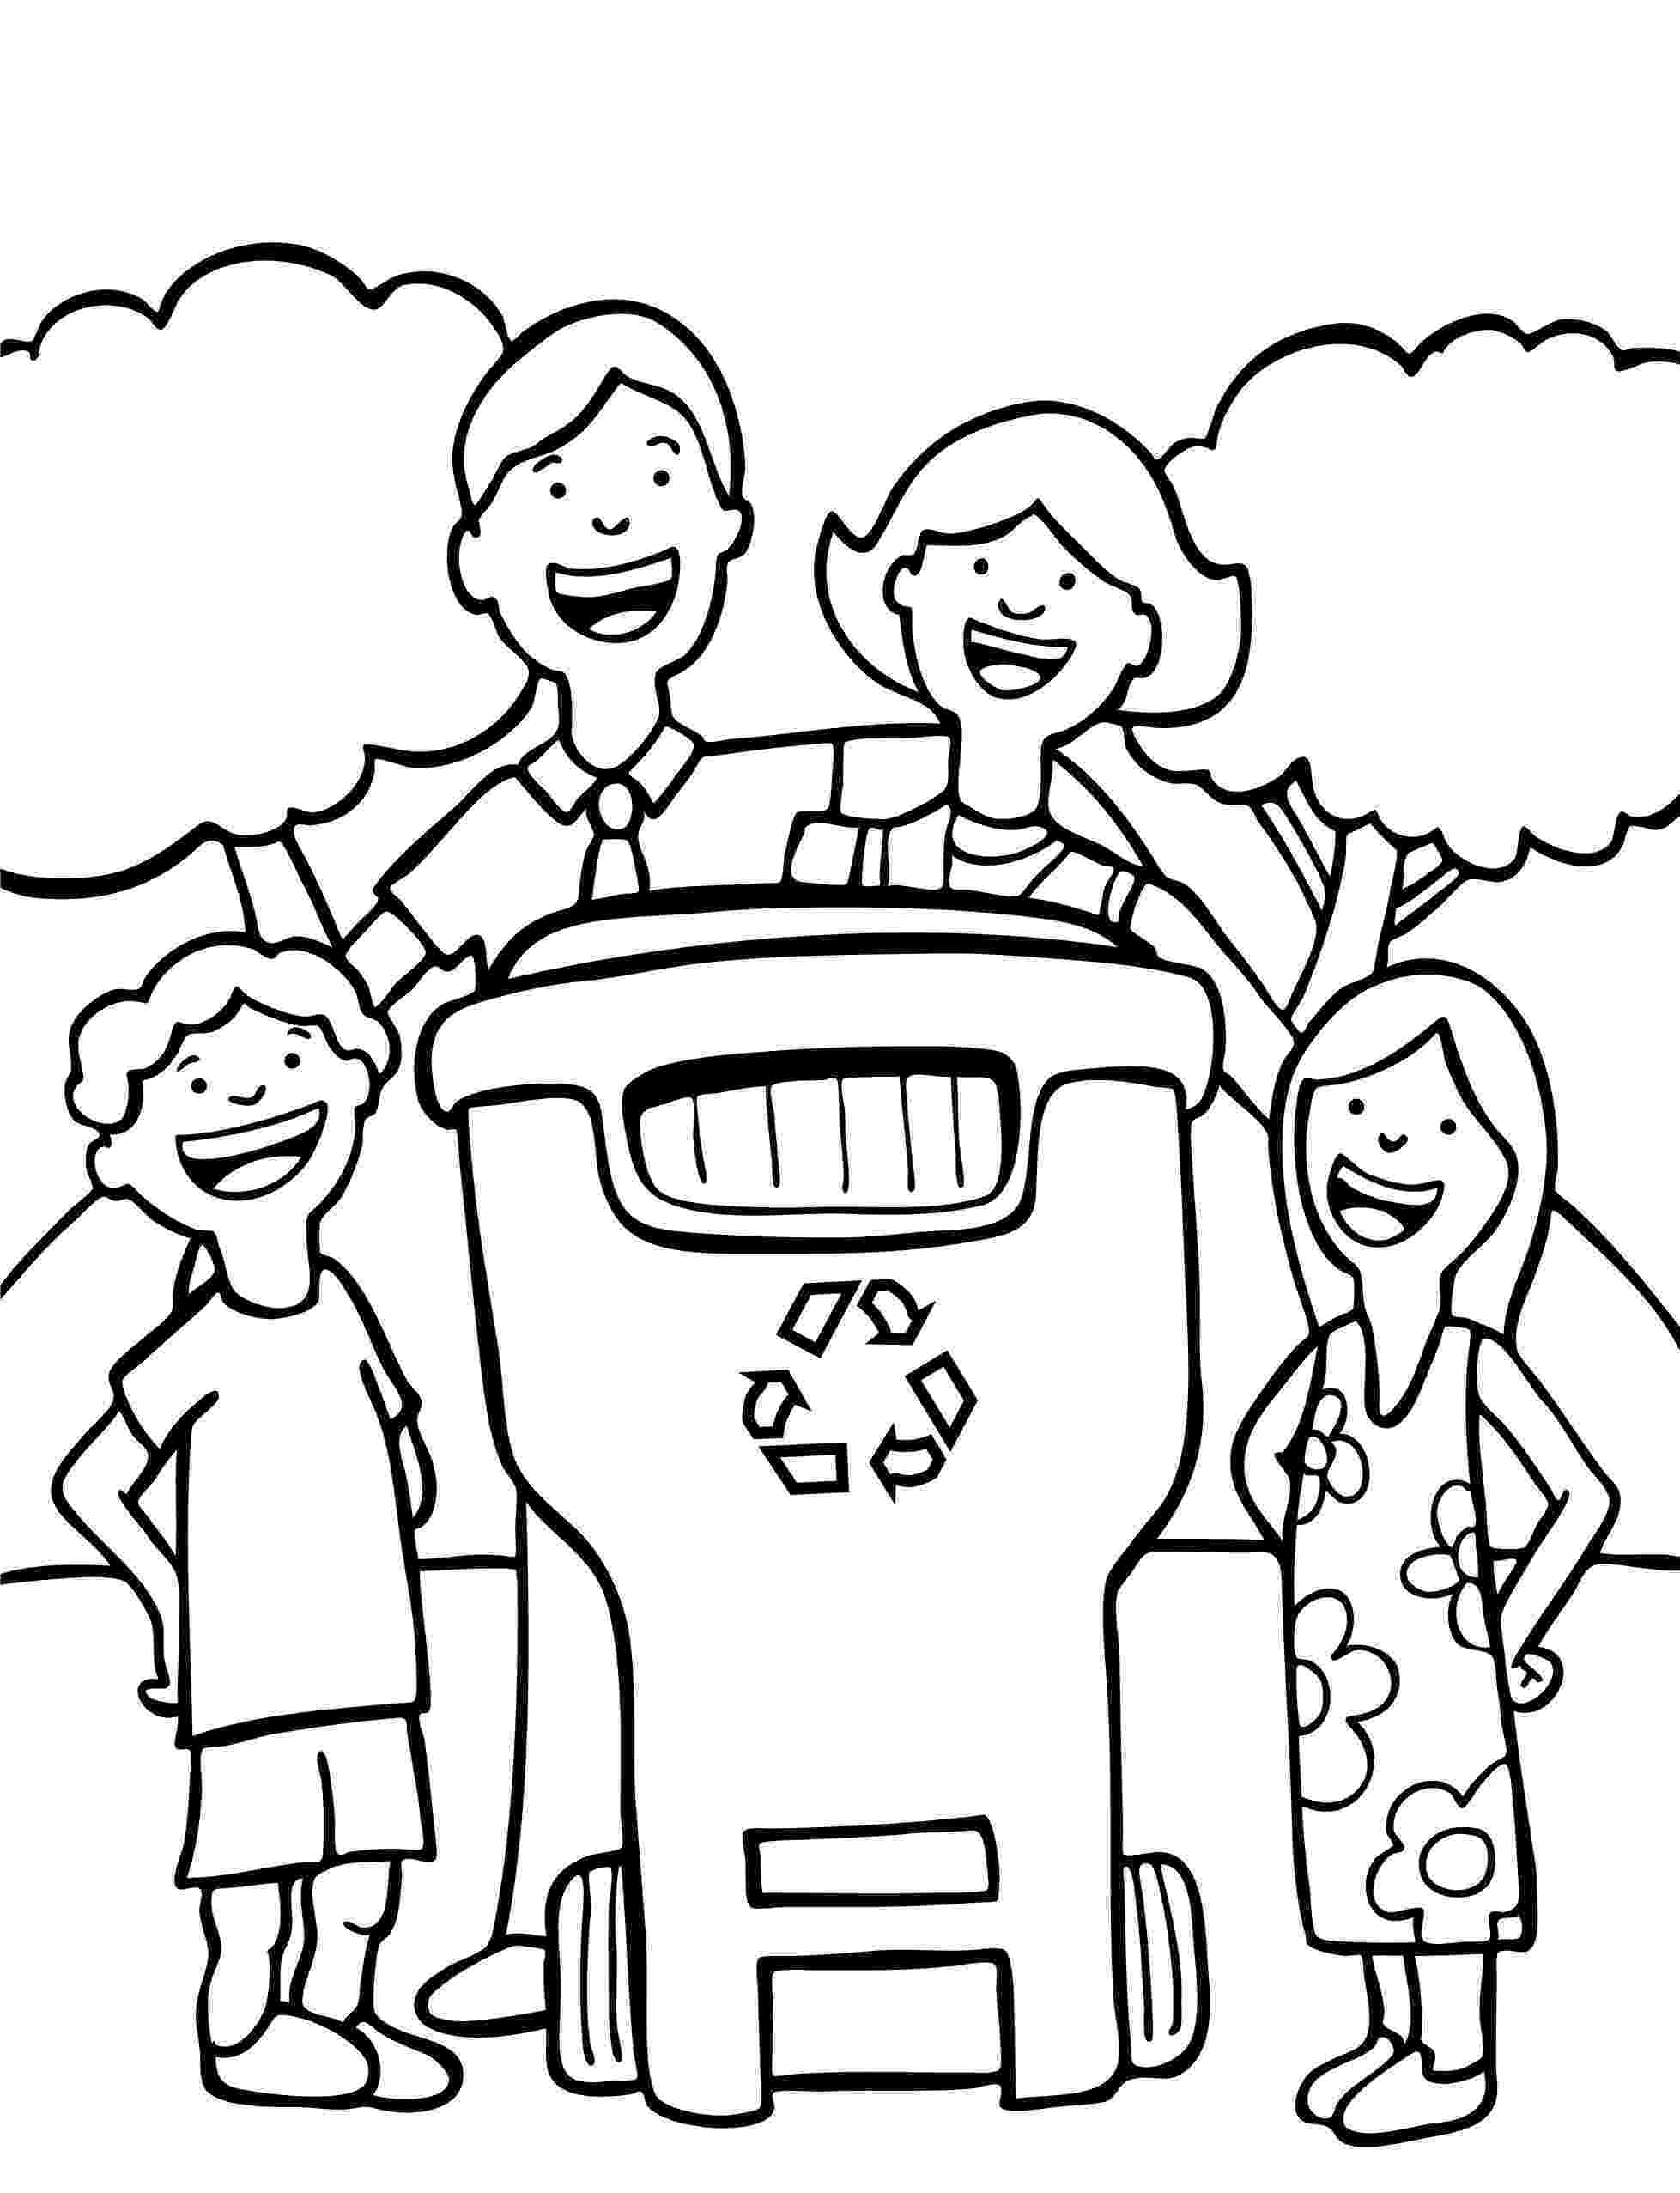 recycling coloring pages printable recyclejpg coloring pages recycling printable